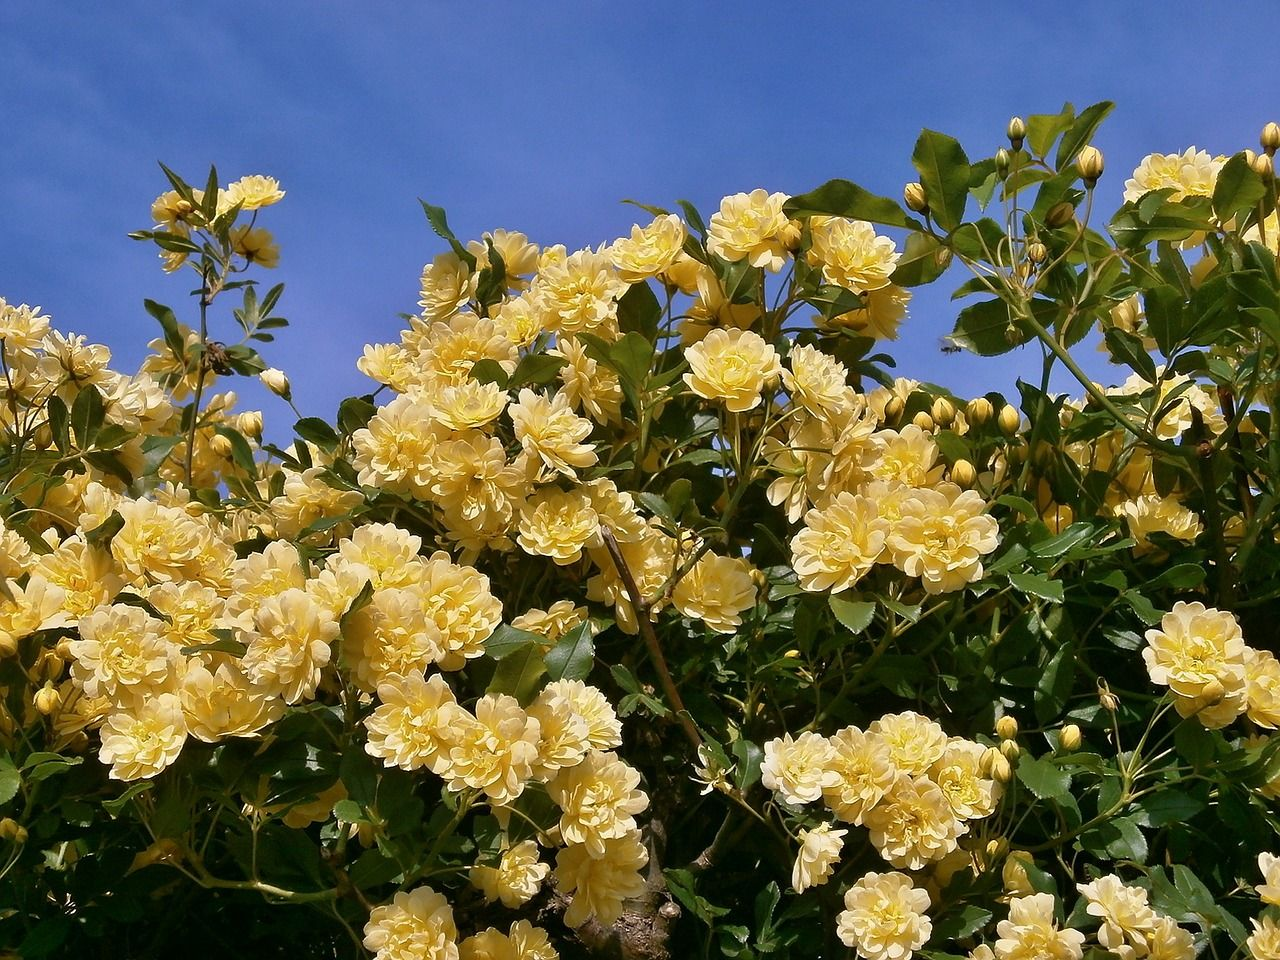 Blue sky and yellow rose bush champion agencies pinterest rose free image on pixabay rose yellow flowers mightylinksfo Images